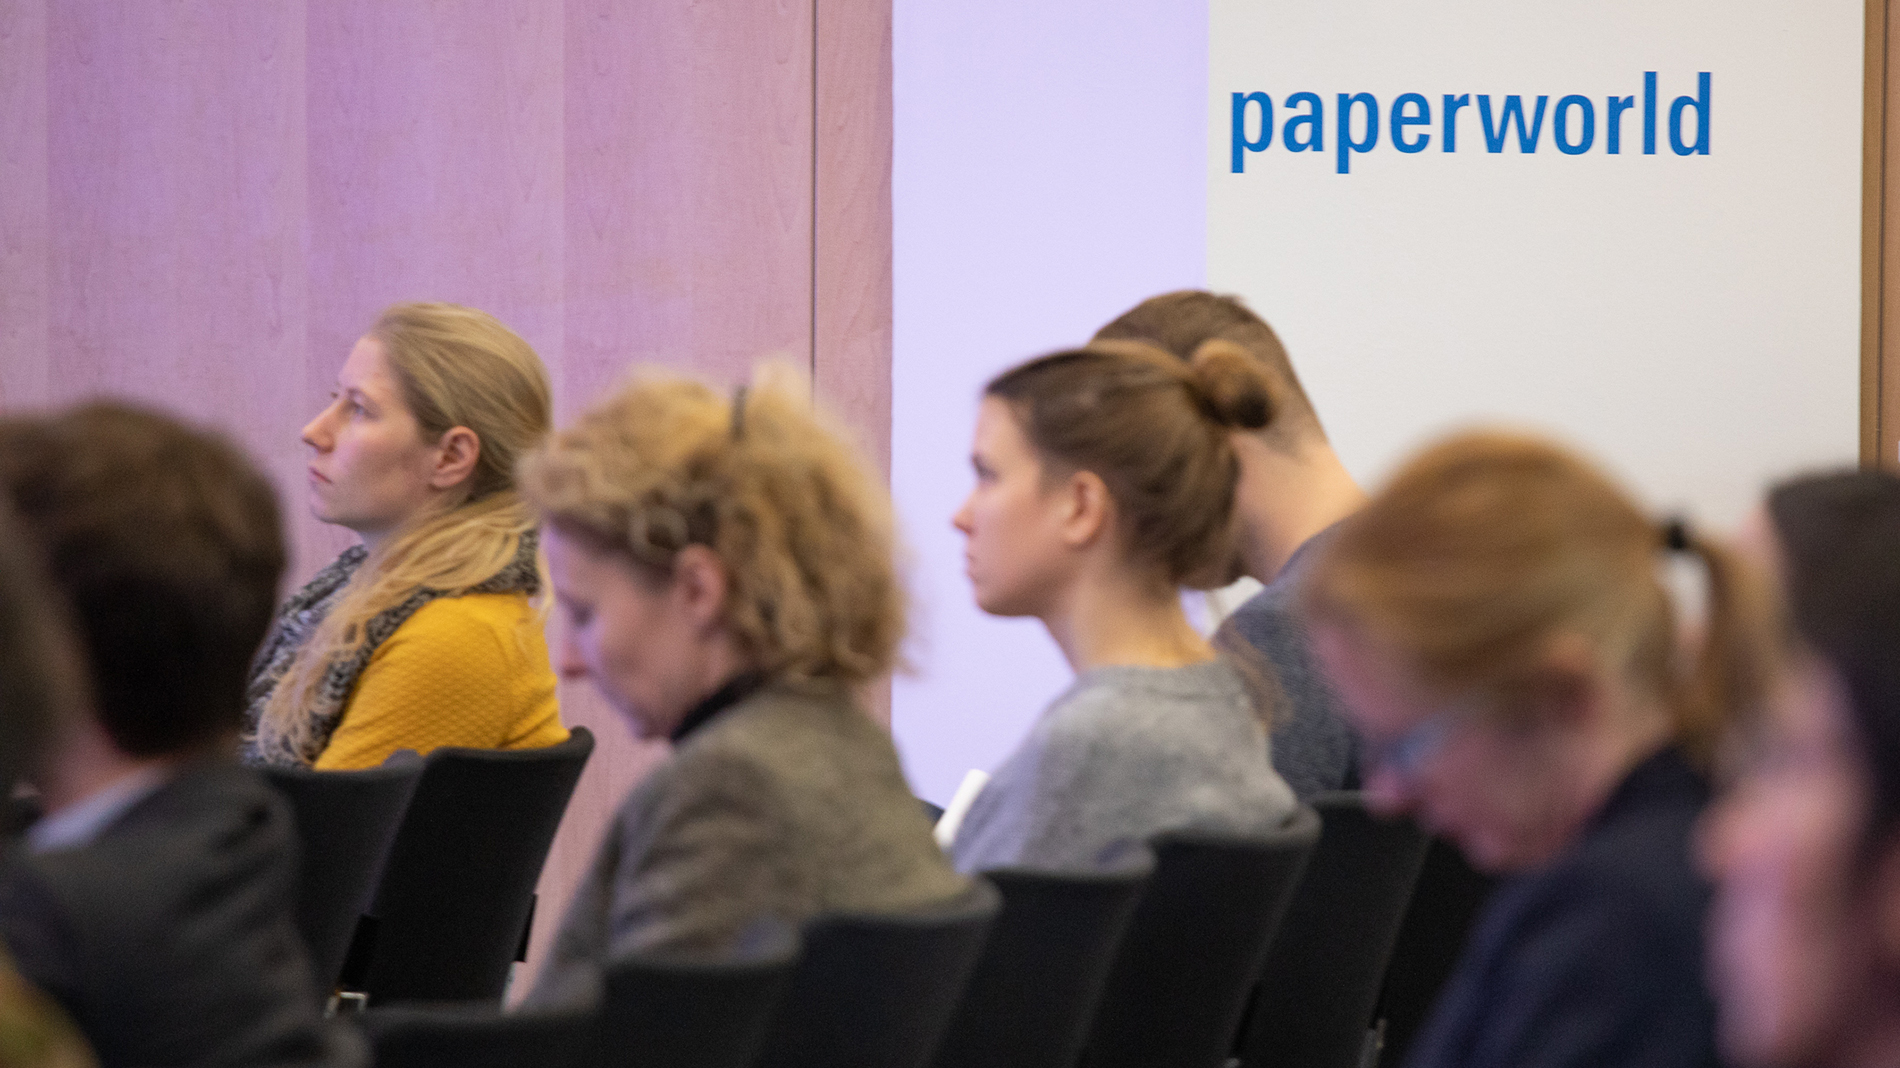 Visitors are listening to a lecture at the Sustainable Offcie Day of Paperworld